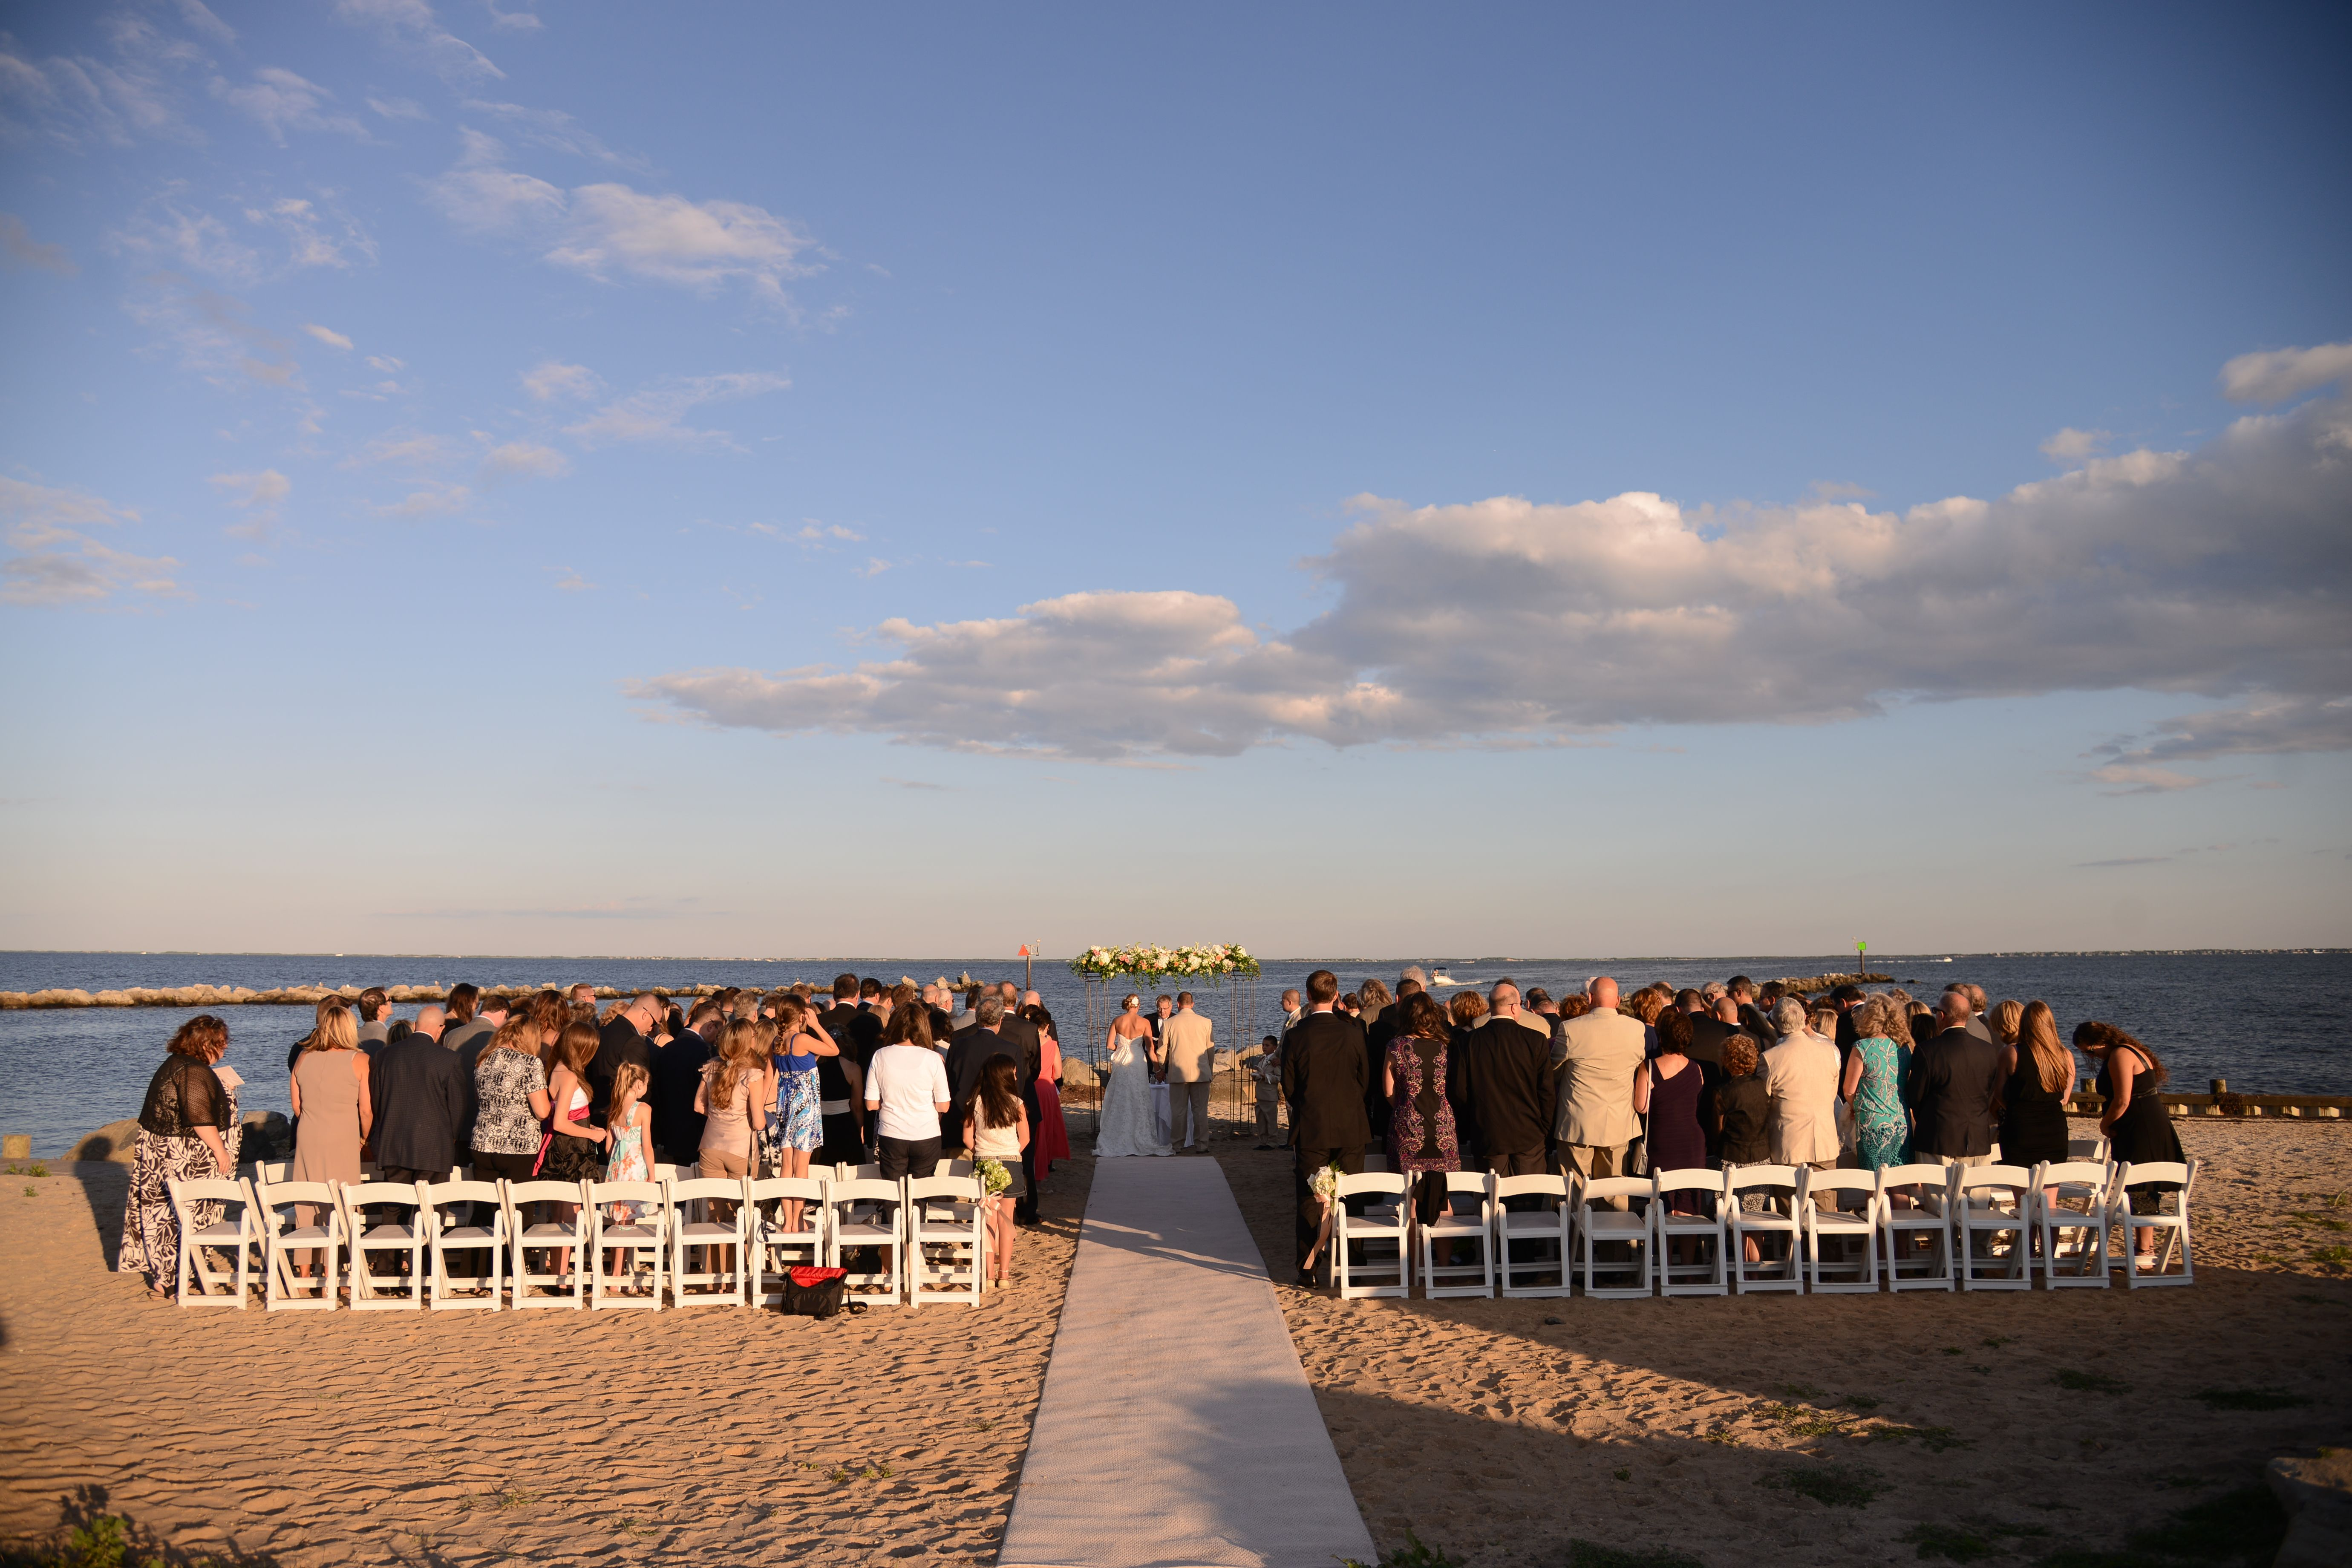 Land's End Beach Ceremony Overlooking The Great South Bay